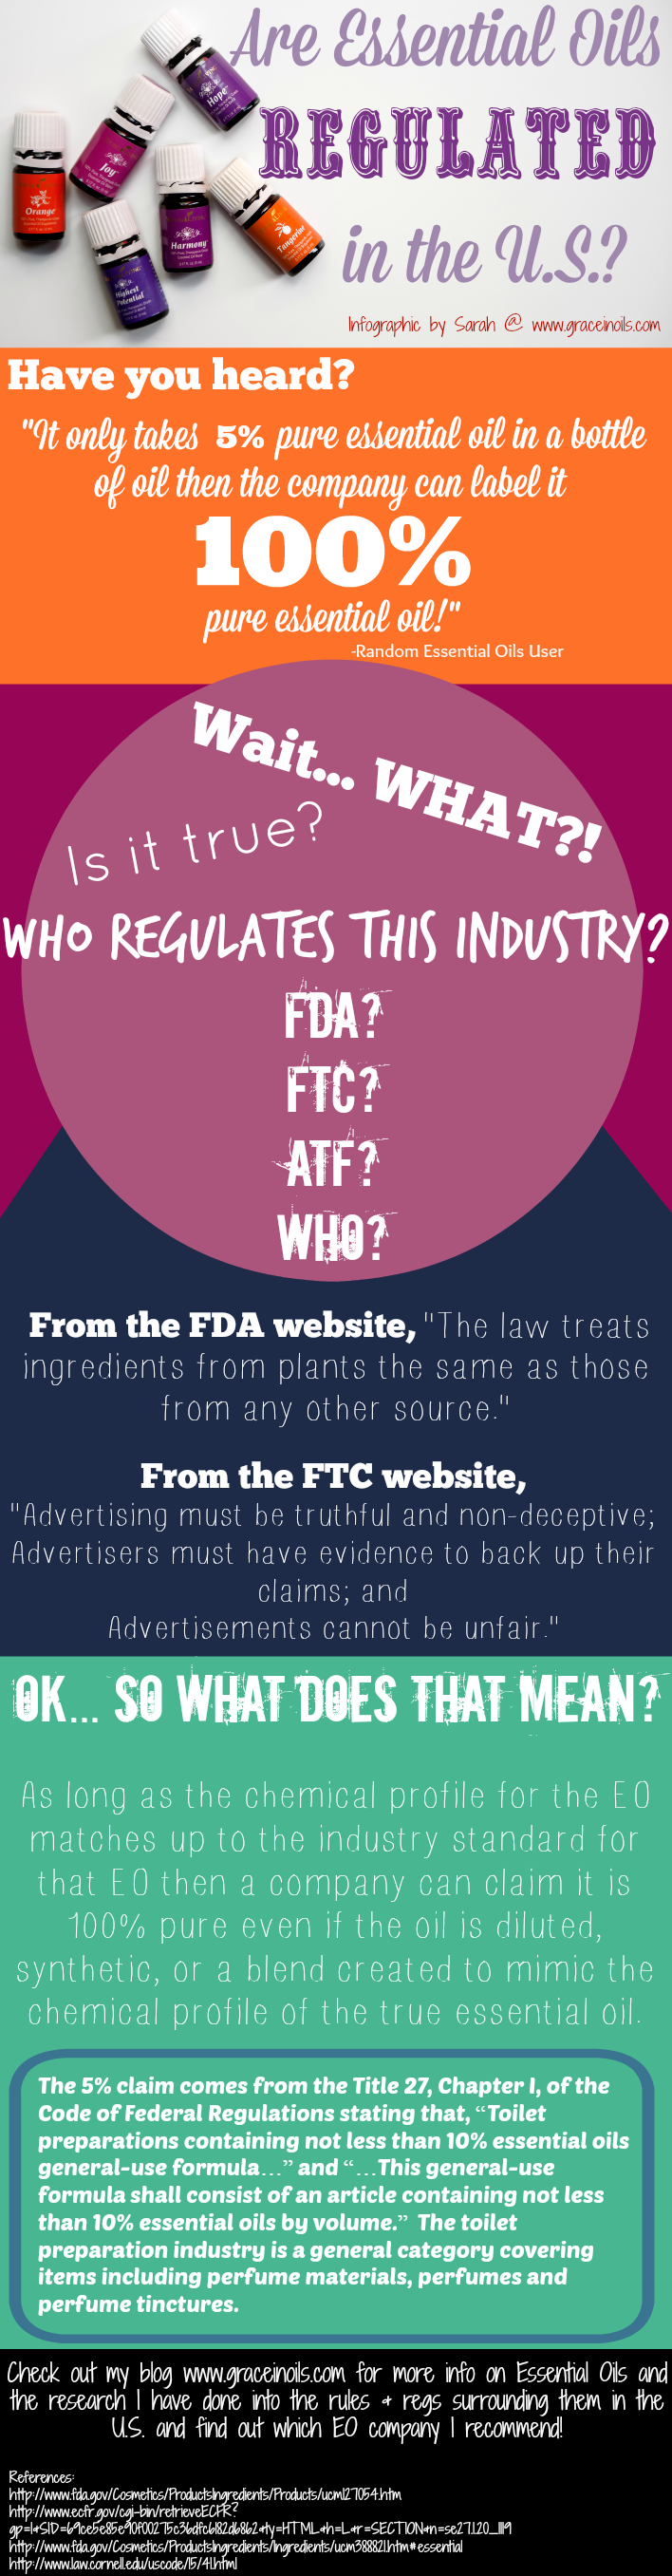 Are Essential Oils Regulated? A quick infographic to reference!